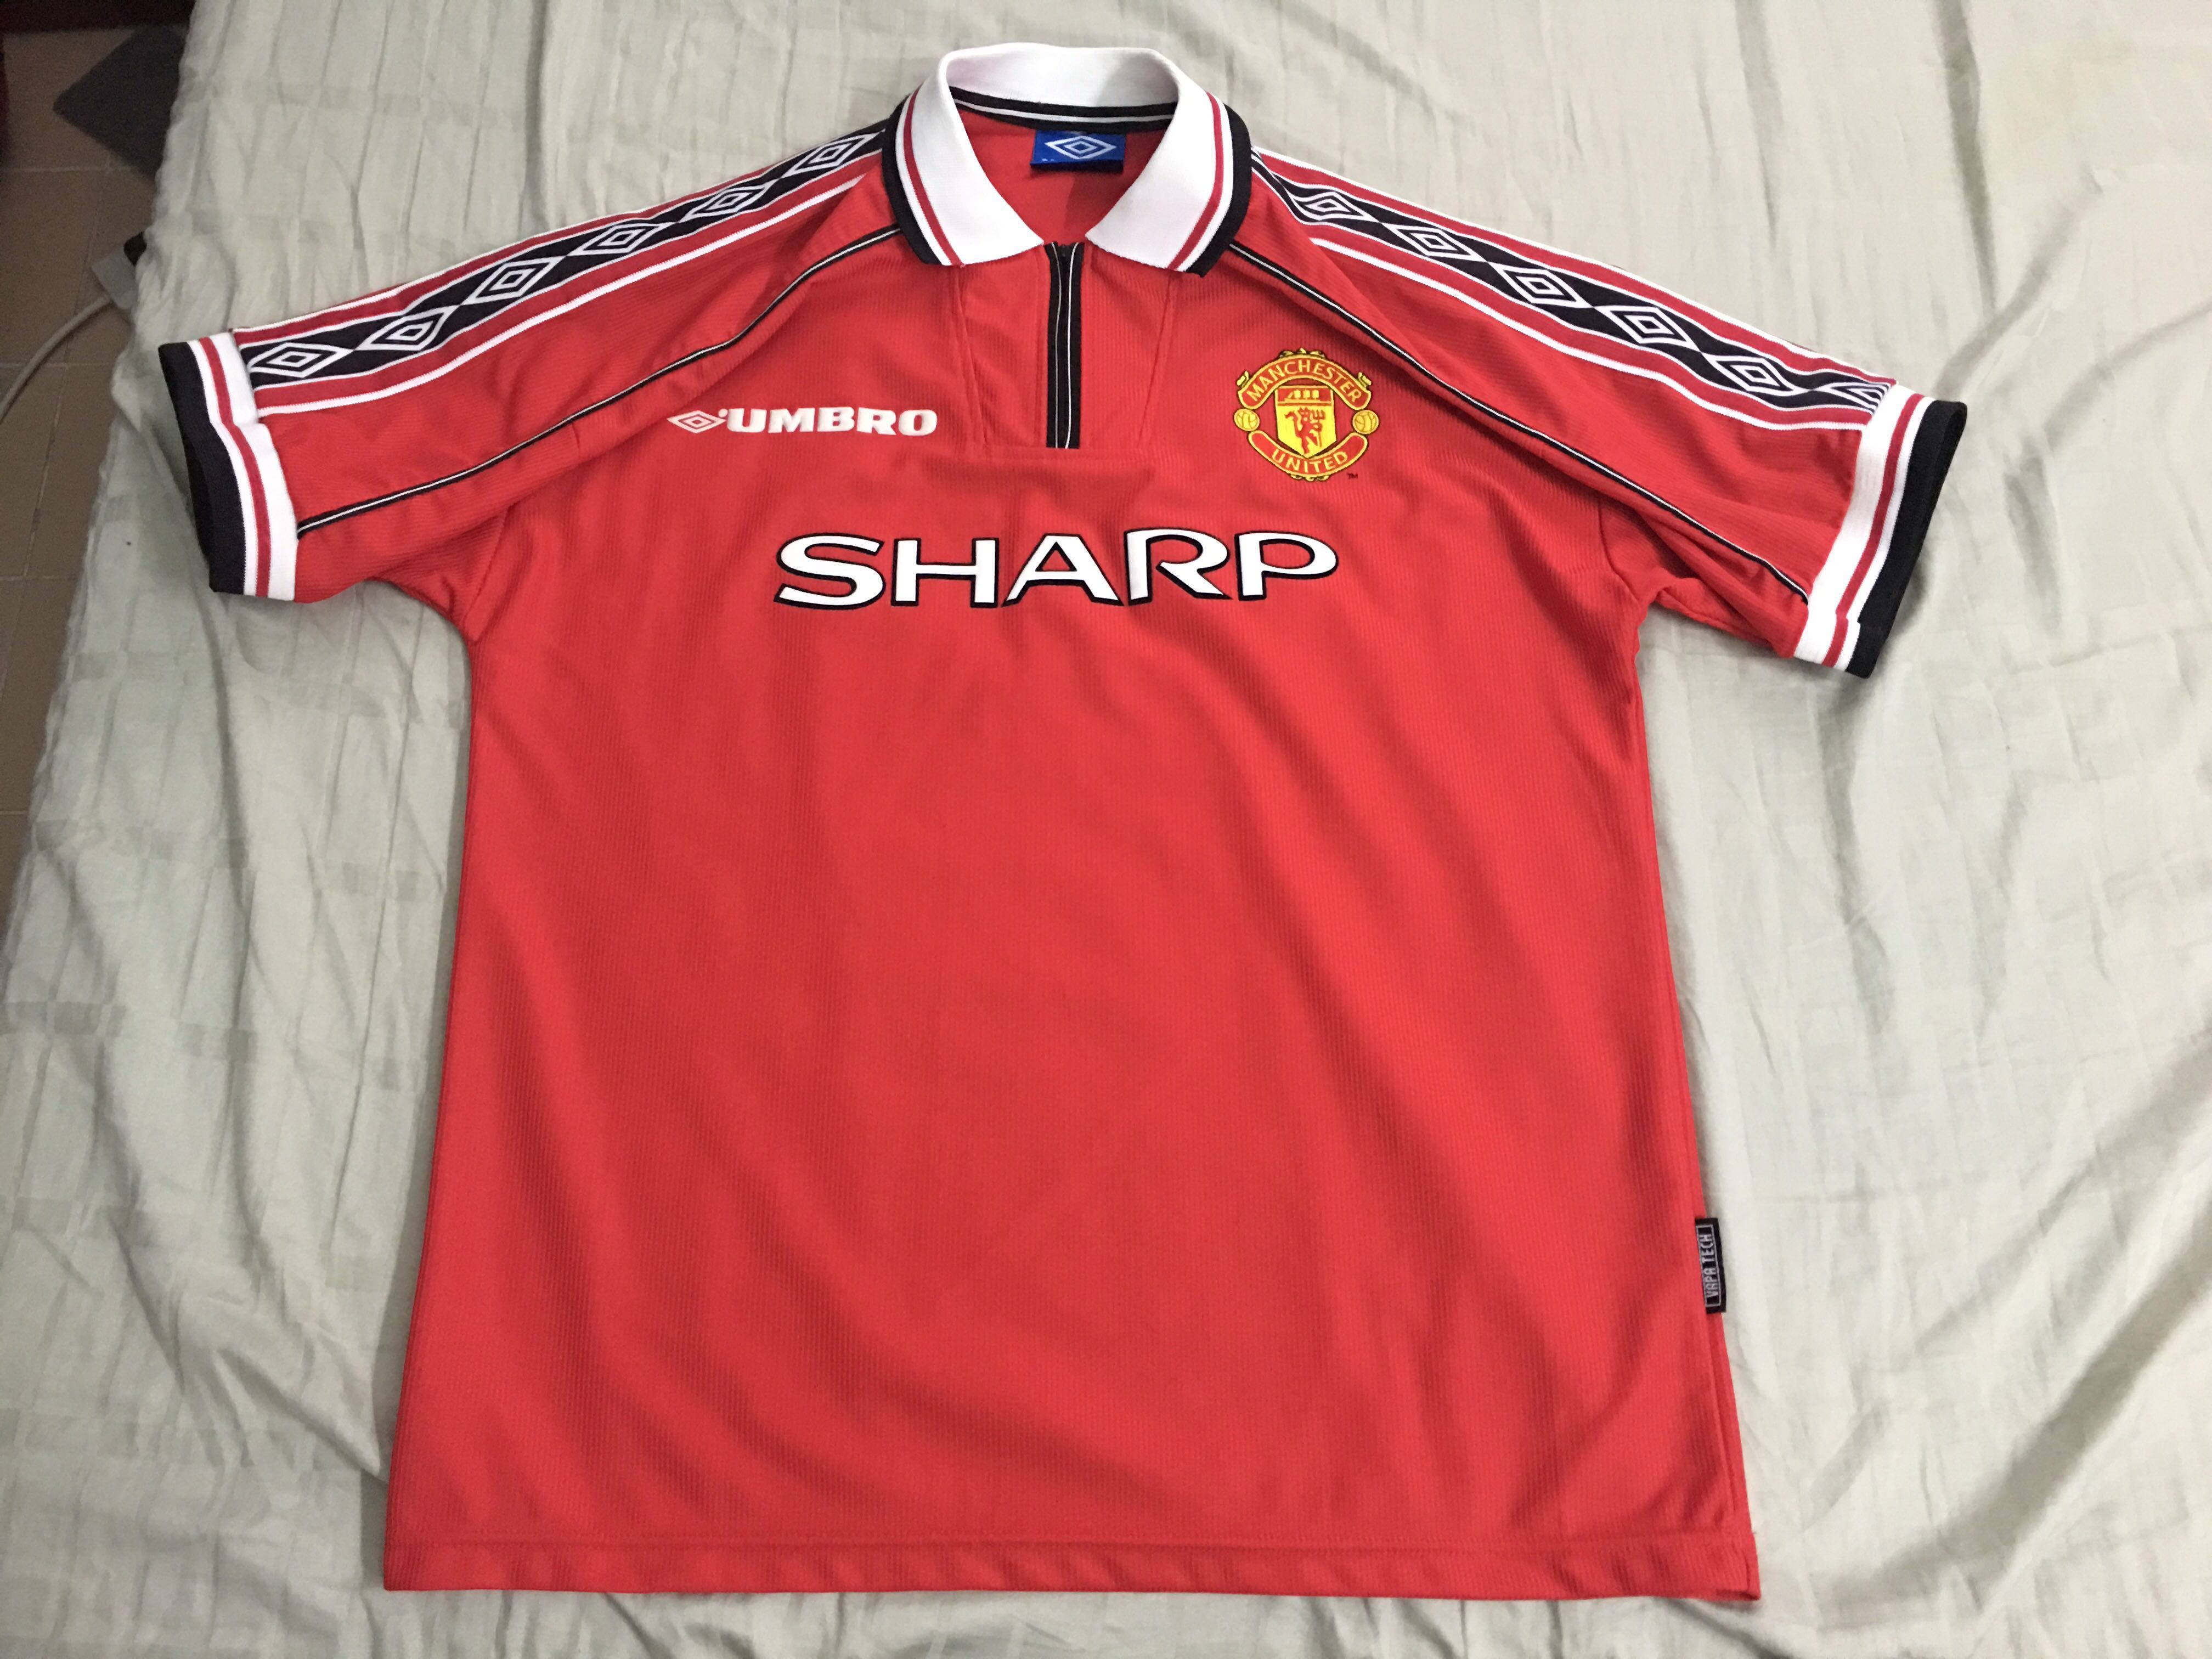 pick up 9bb66 9f15d Authentic Manchester United 98/99 Treble home jersey